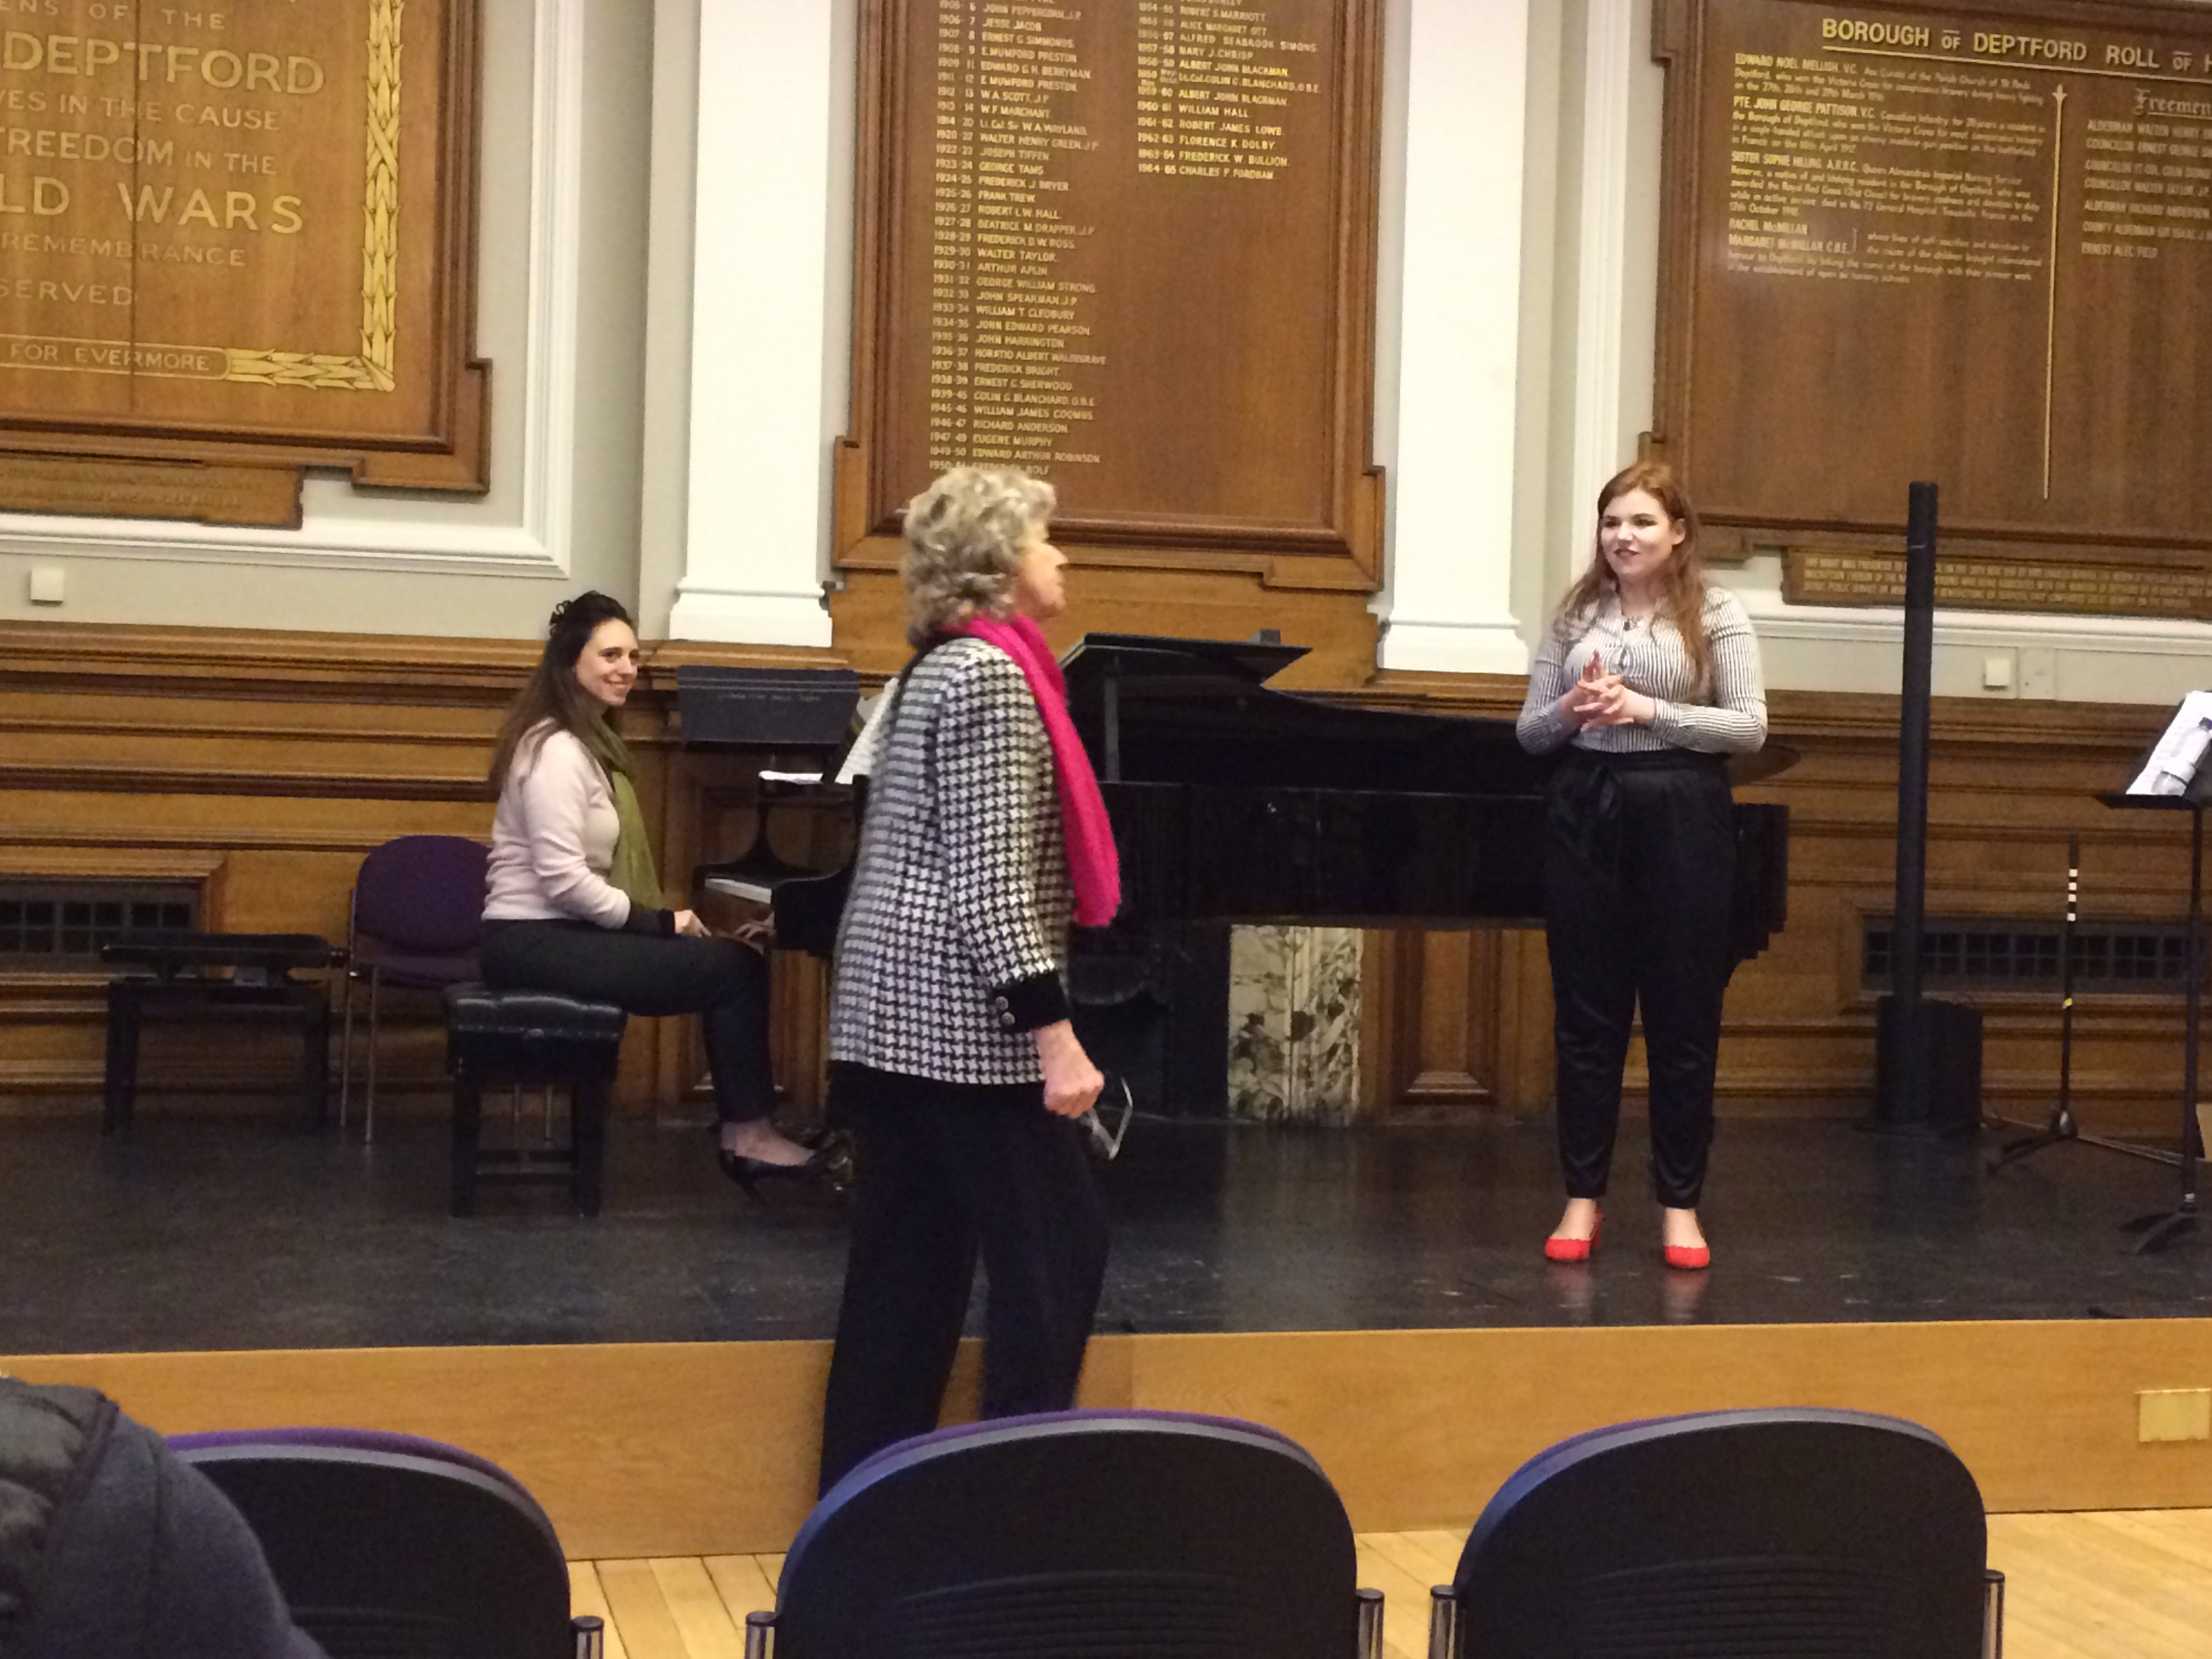 Masterclass with Felicity Lott at Goldsmiths College, London